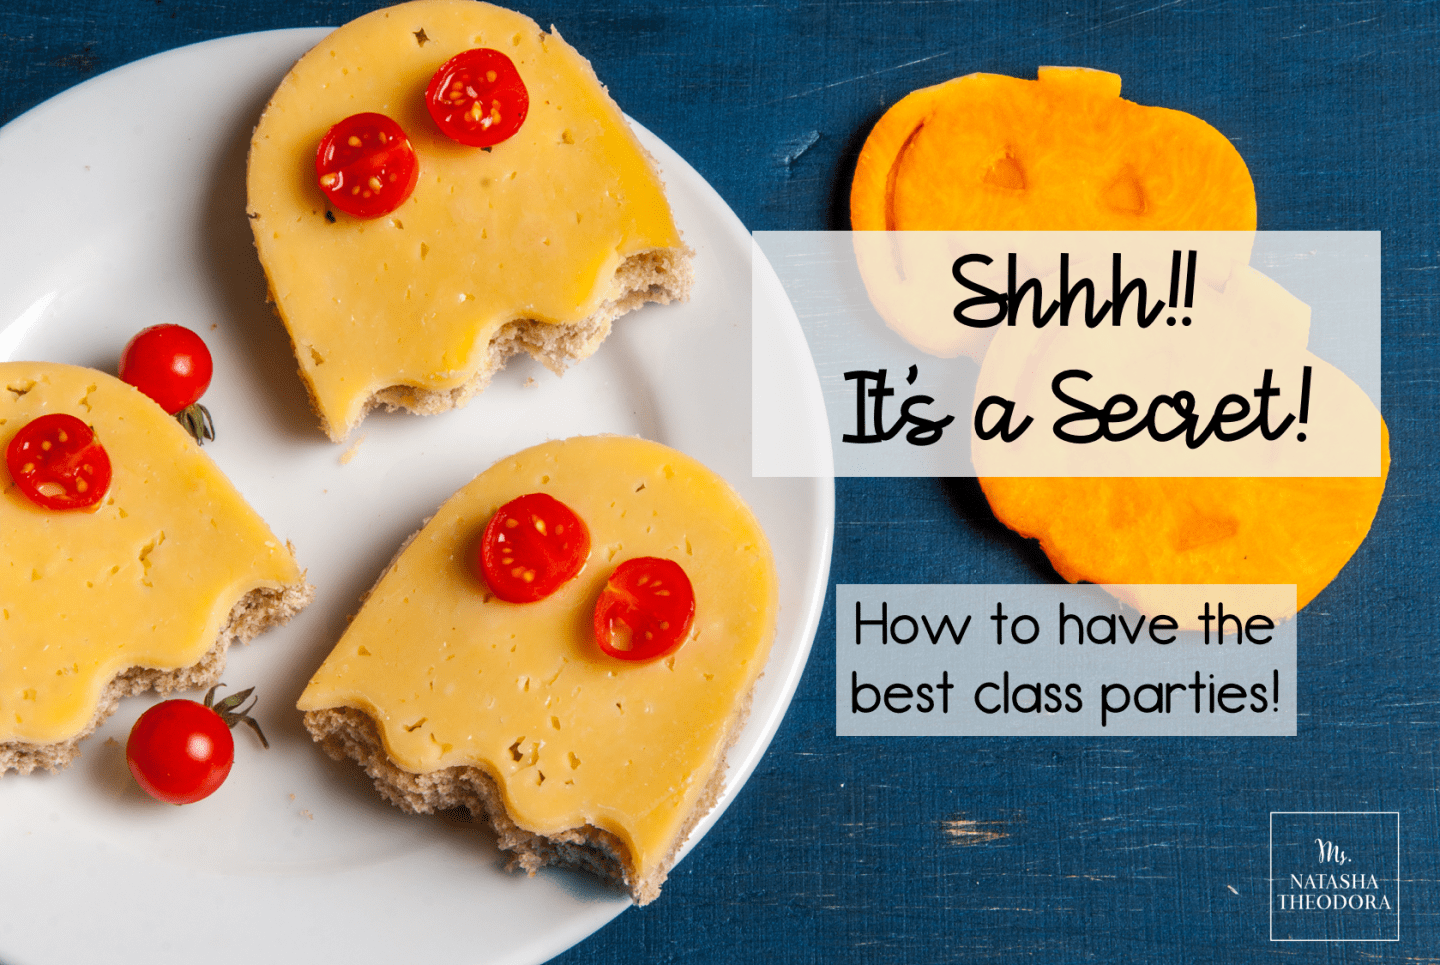 Shhh!! It's a Secret! How to Have the Best Class Parties!